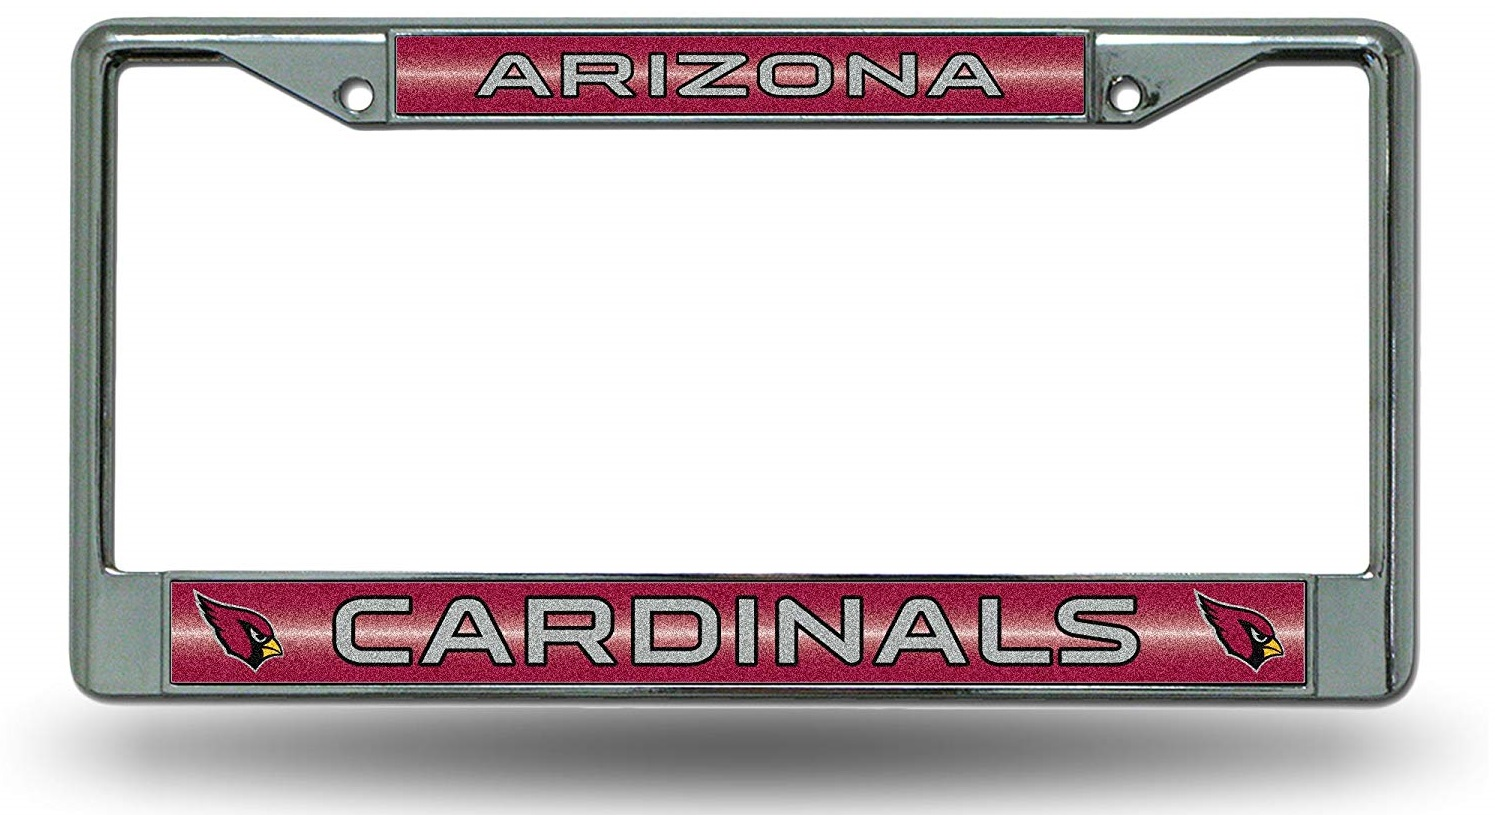 The 10 Best License Plate Frames to Buy 2019 - Auto Quarterly